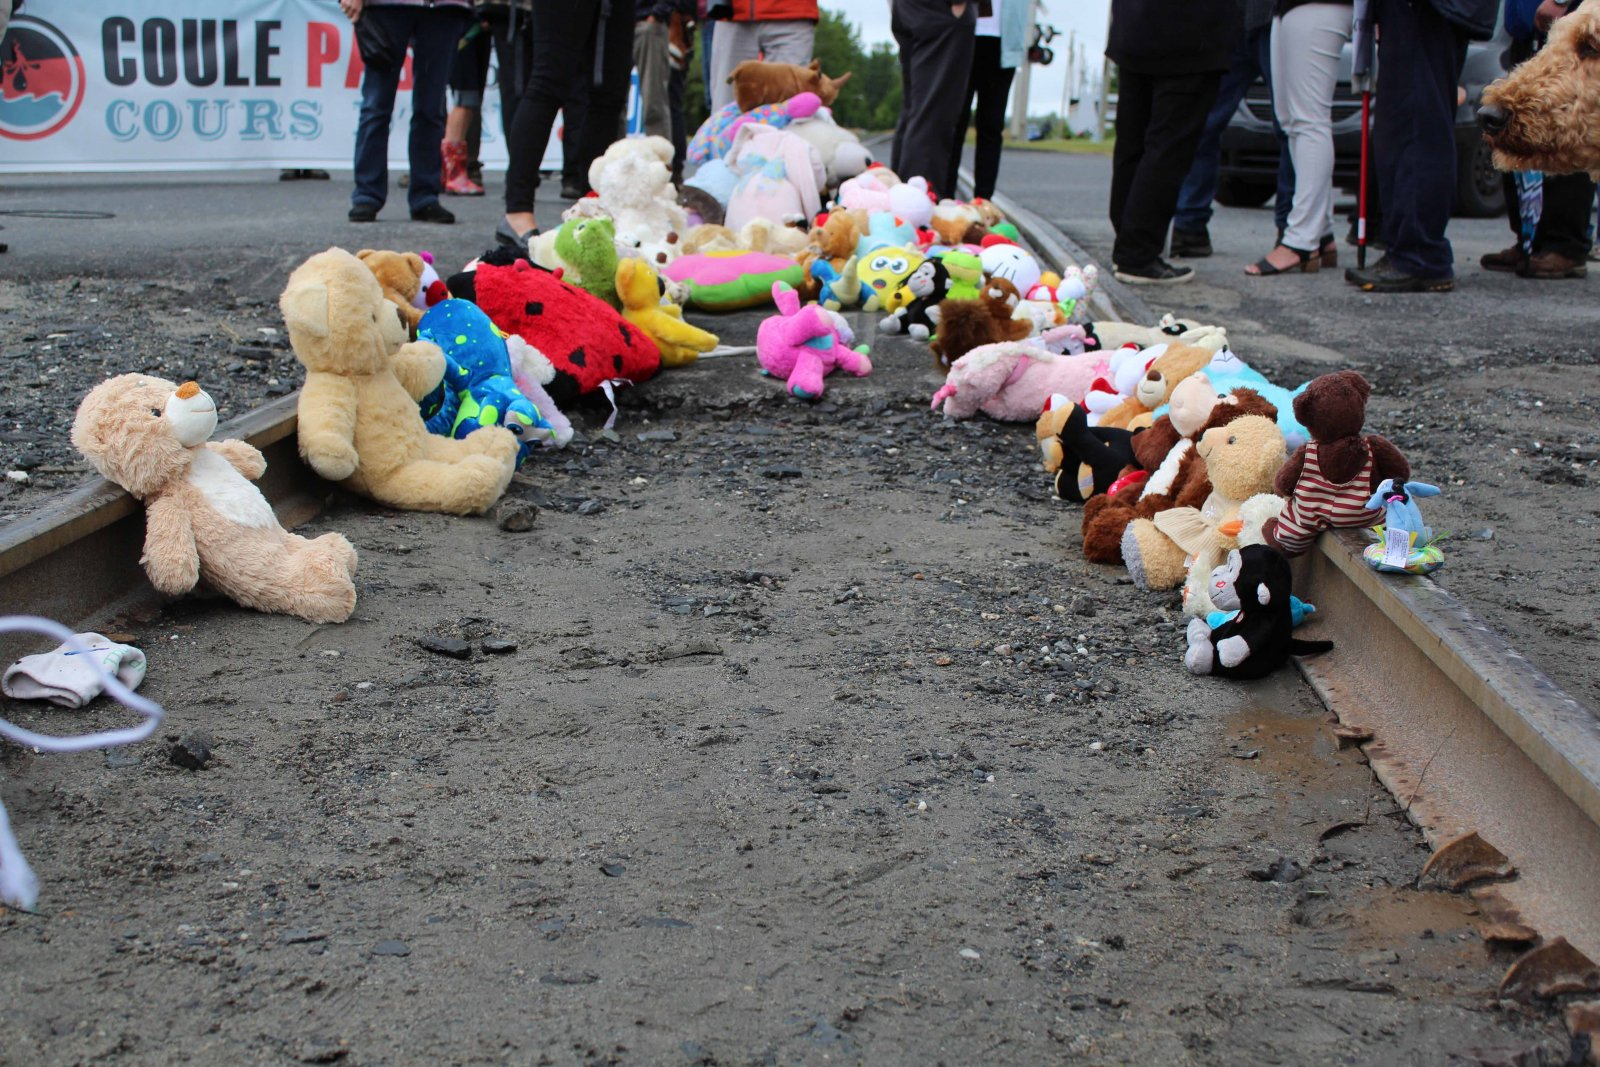 Lac-Mégantic, stuffed animals, railway tracks, oil, explosion, aftermath